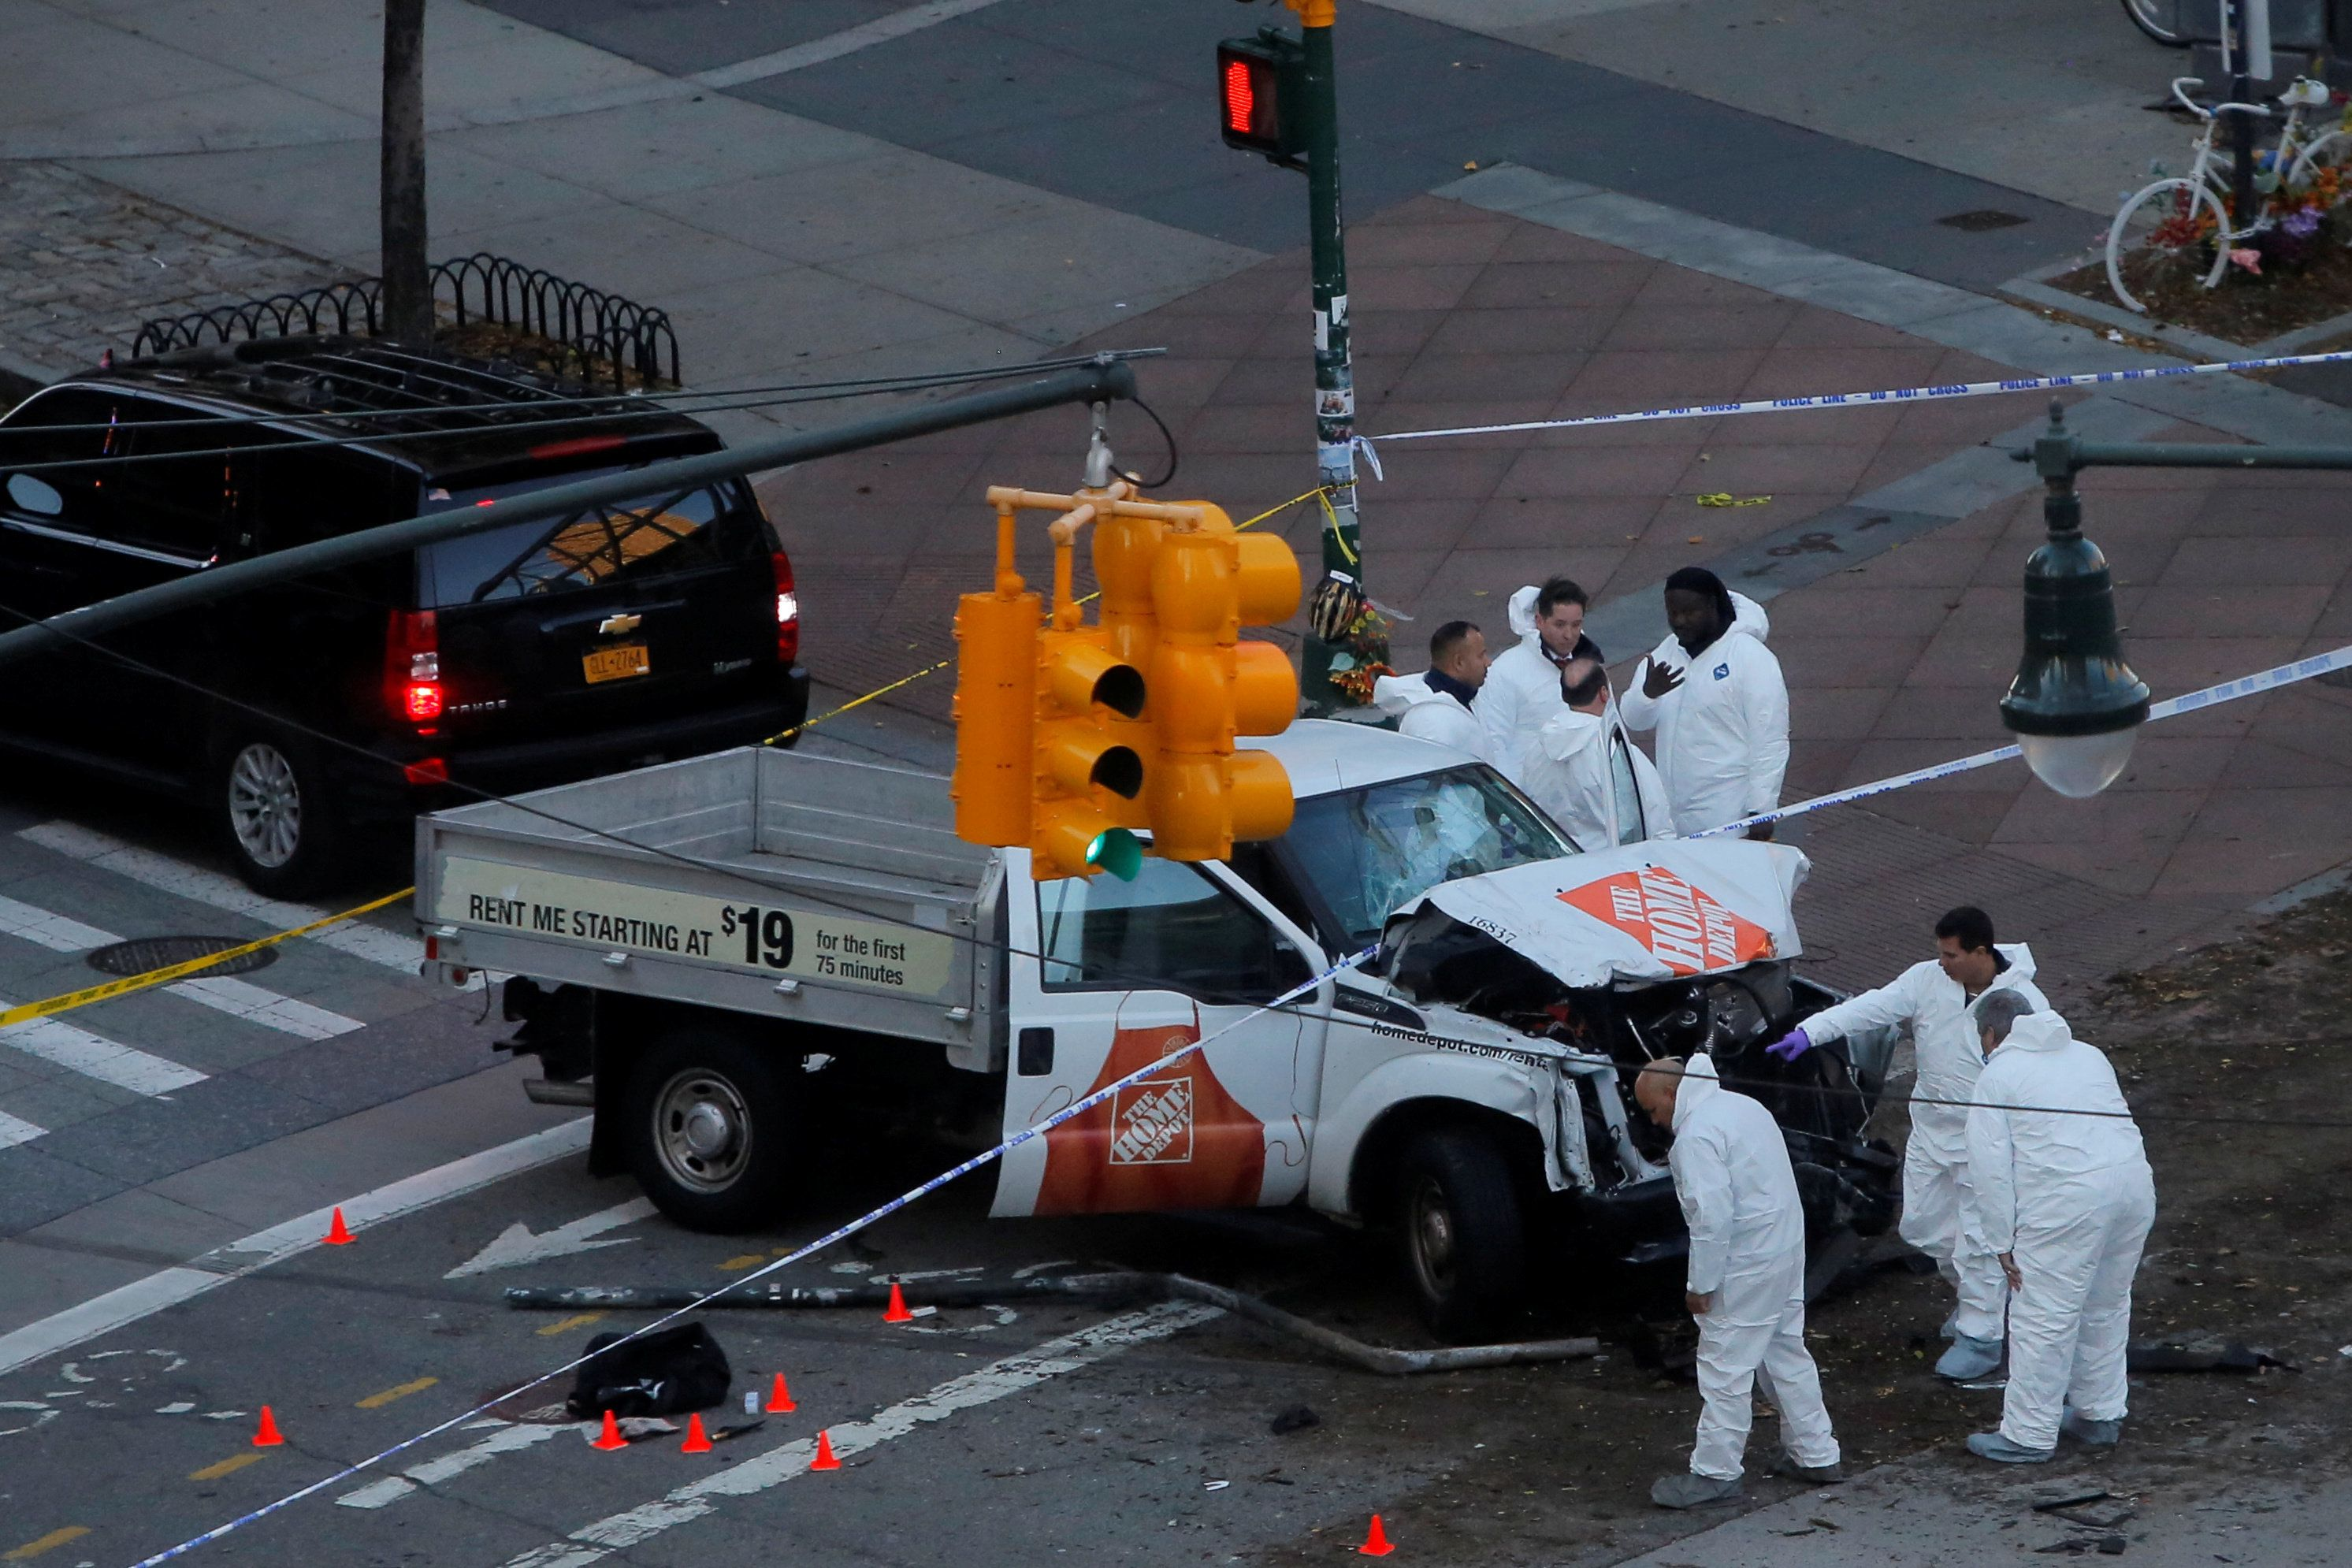 Photos From The Scene Of The Deadly Truck Attack In New York